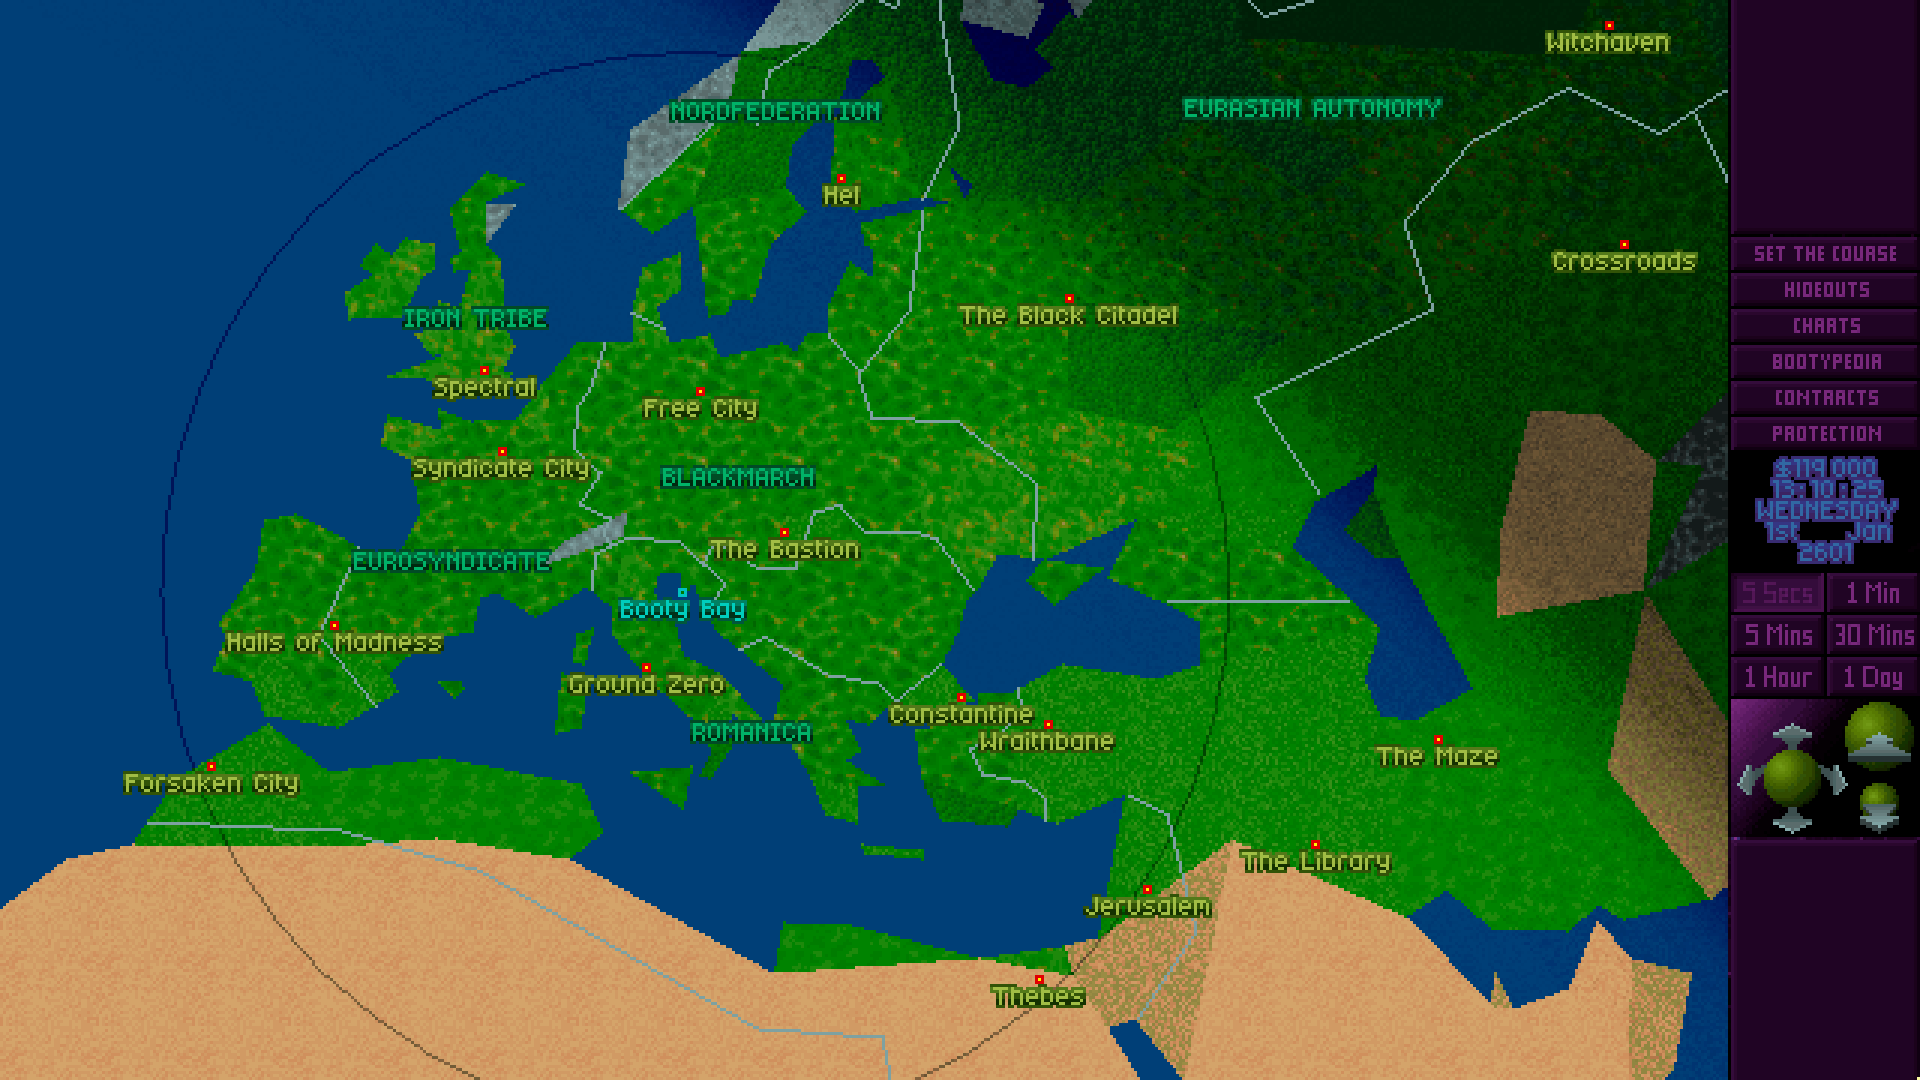 Europe, circa 2600. Your hideout name may vary.